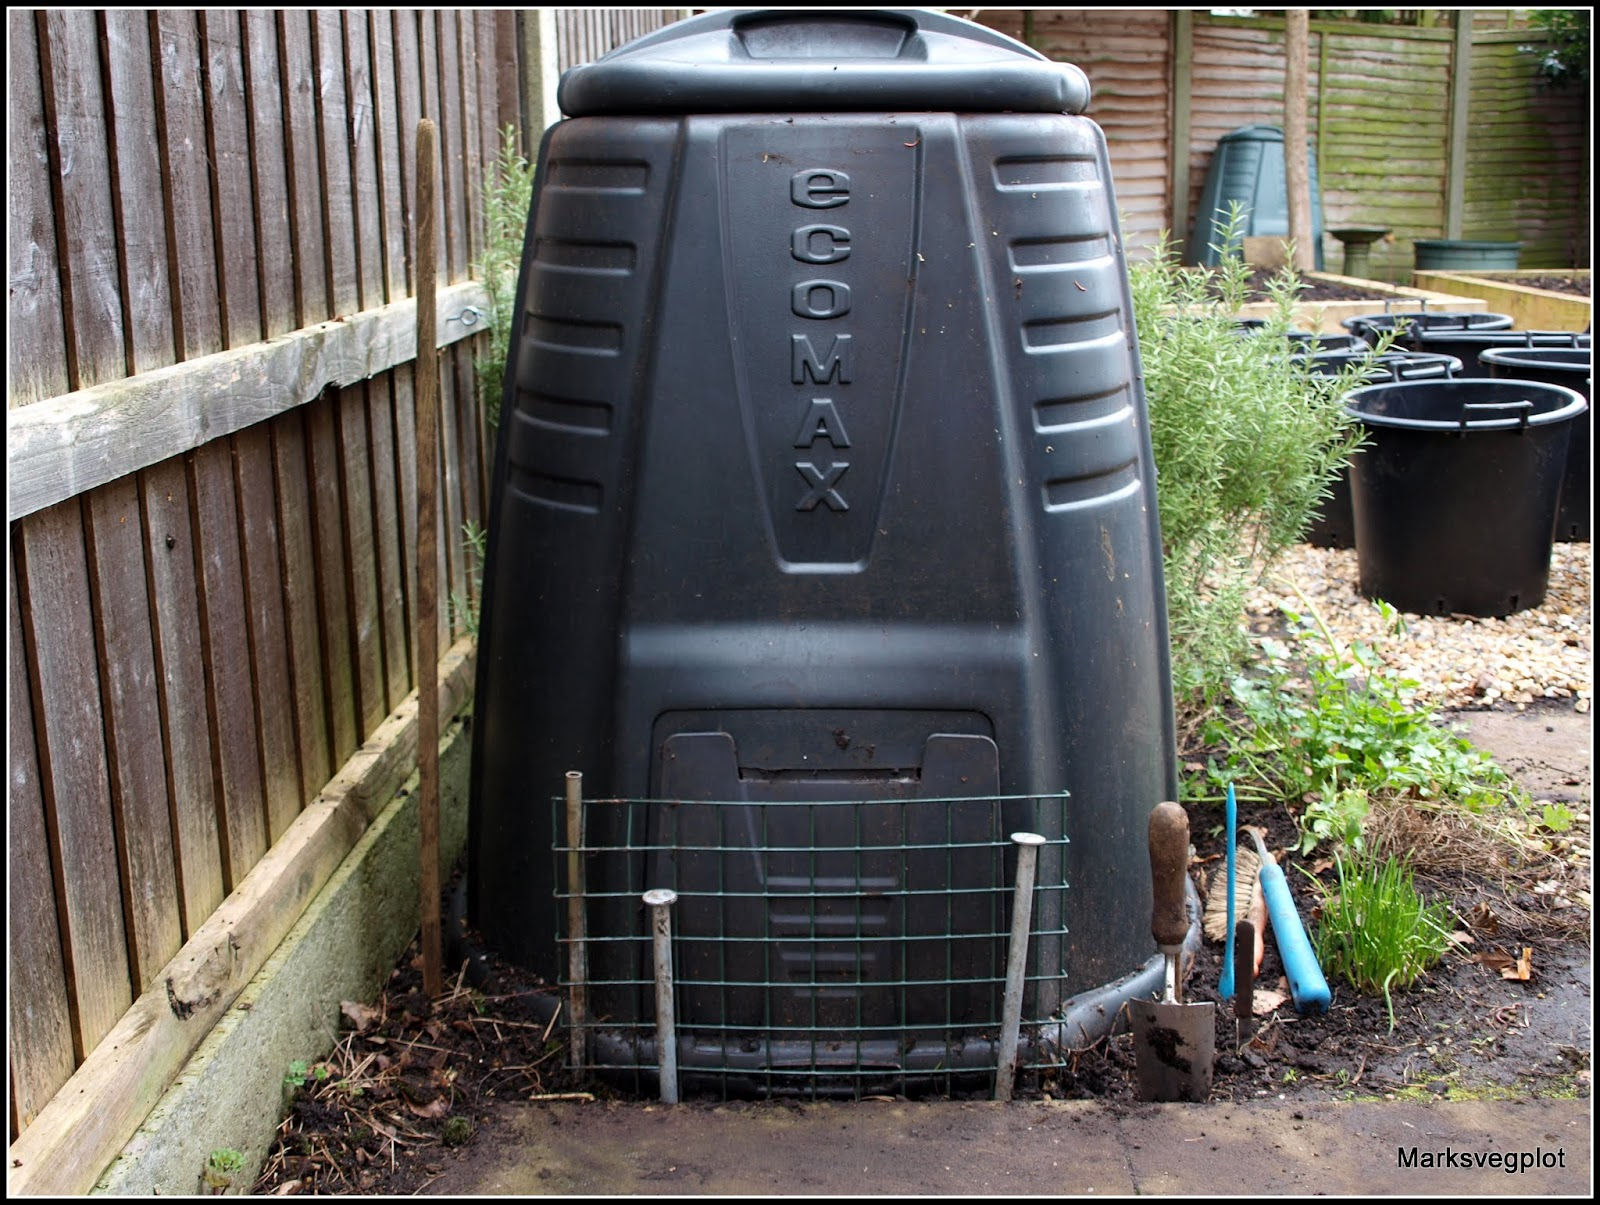 the wire grille contrivance is a way of stopping animals from unpacking the bin via that useless little door if i donu0027t barricade it in this way